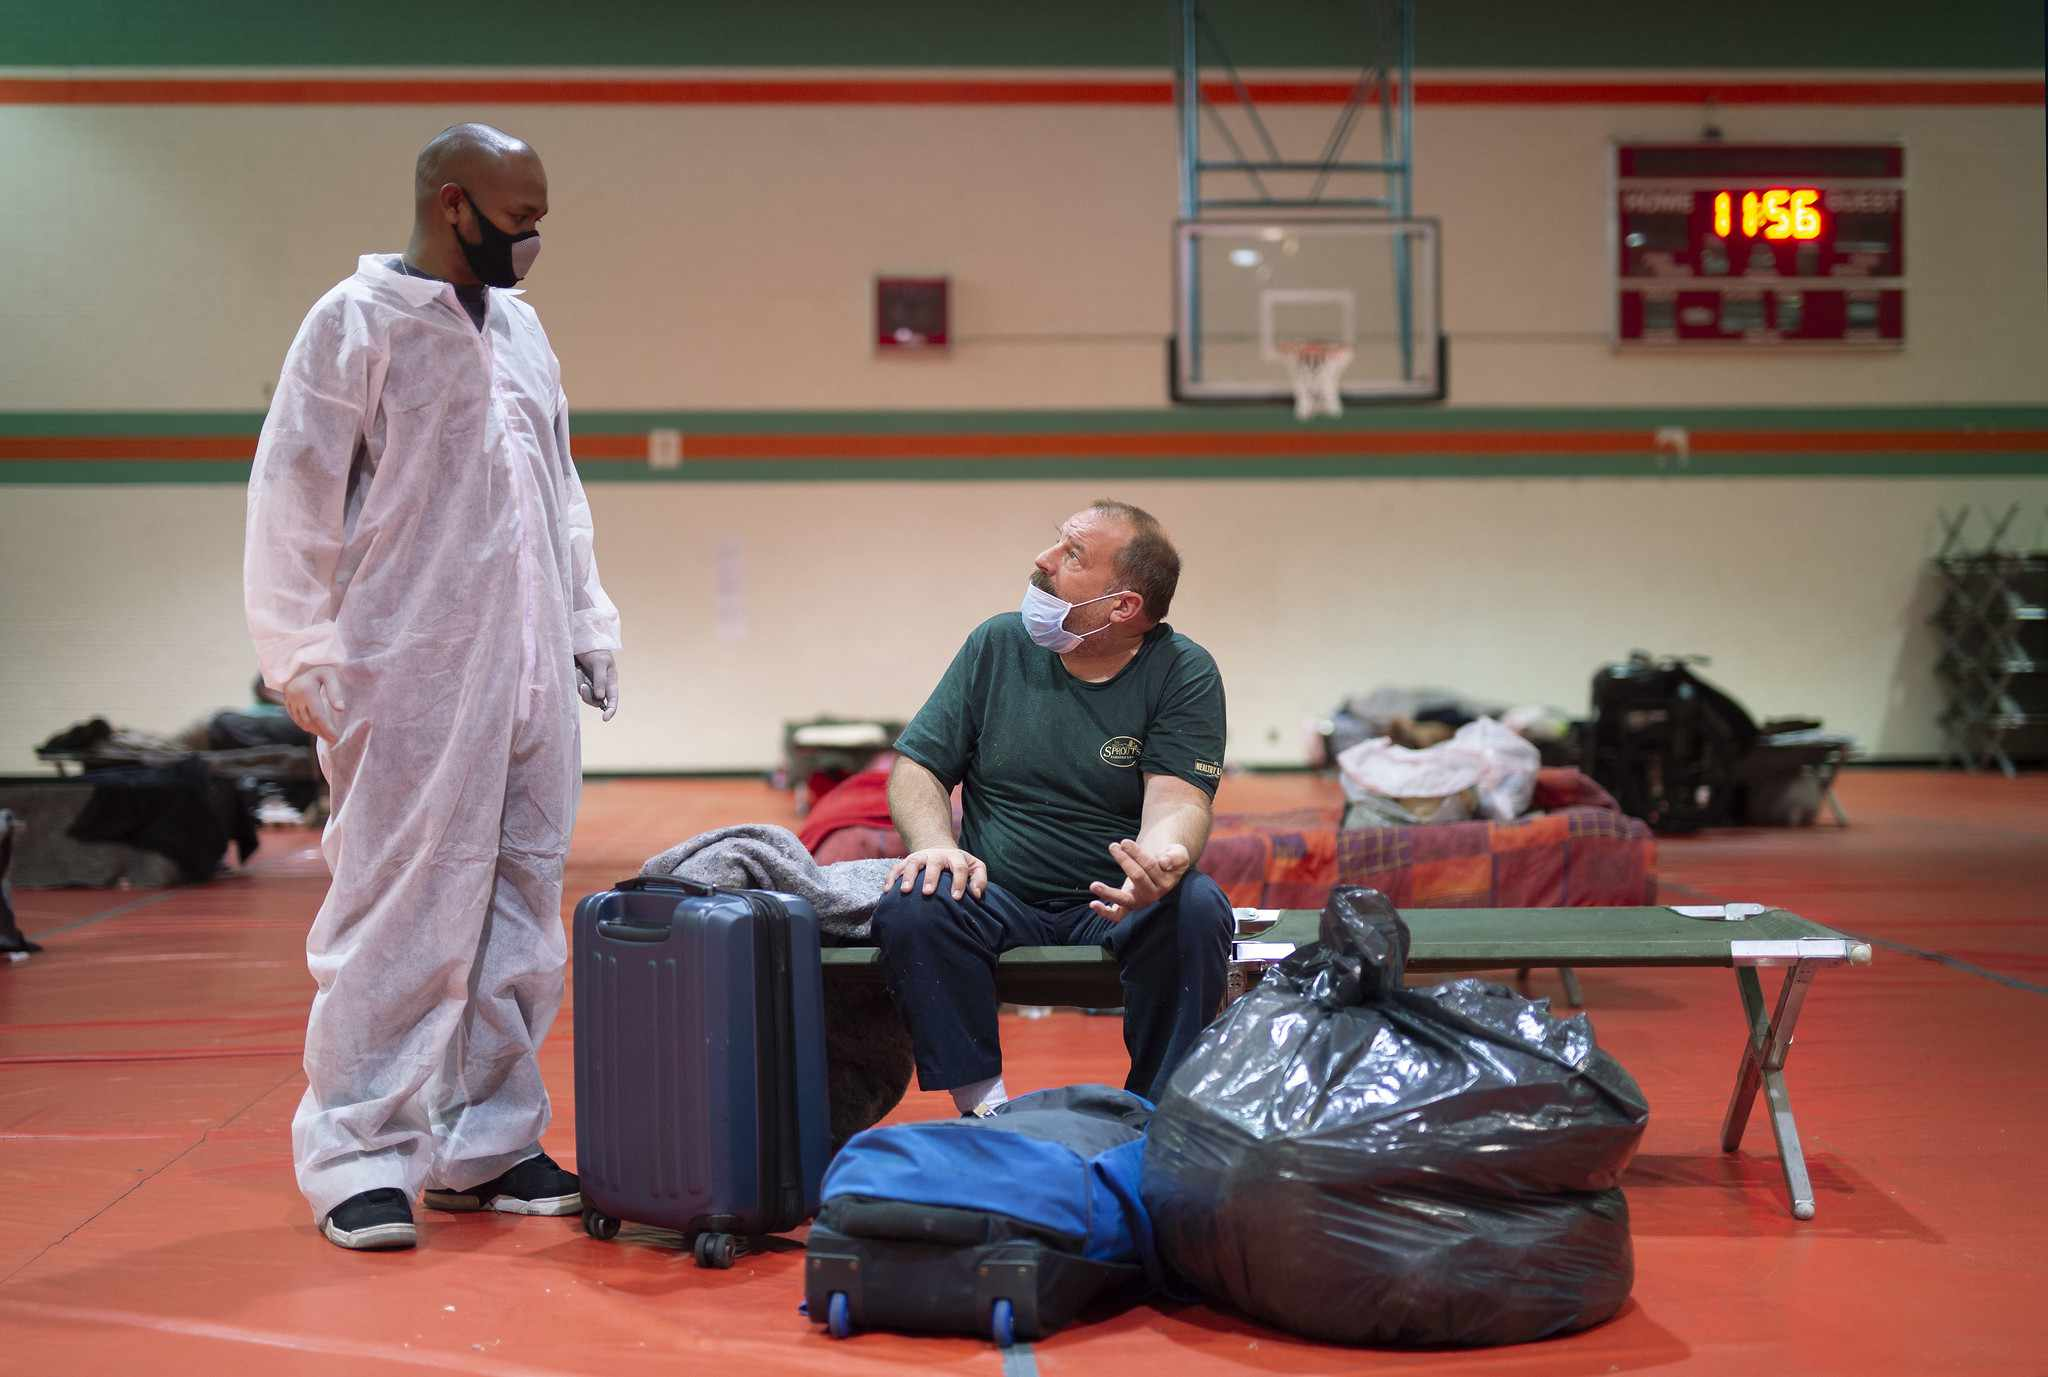 A man helps an unhoused man get to shelter